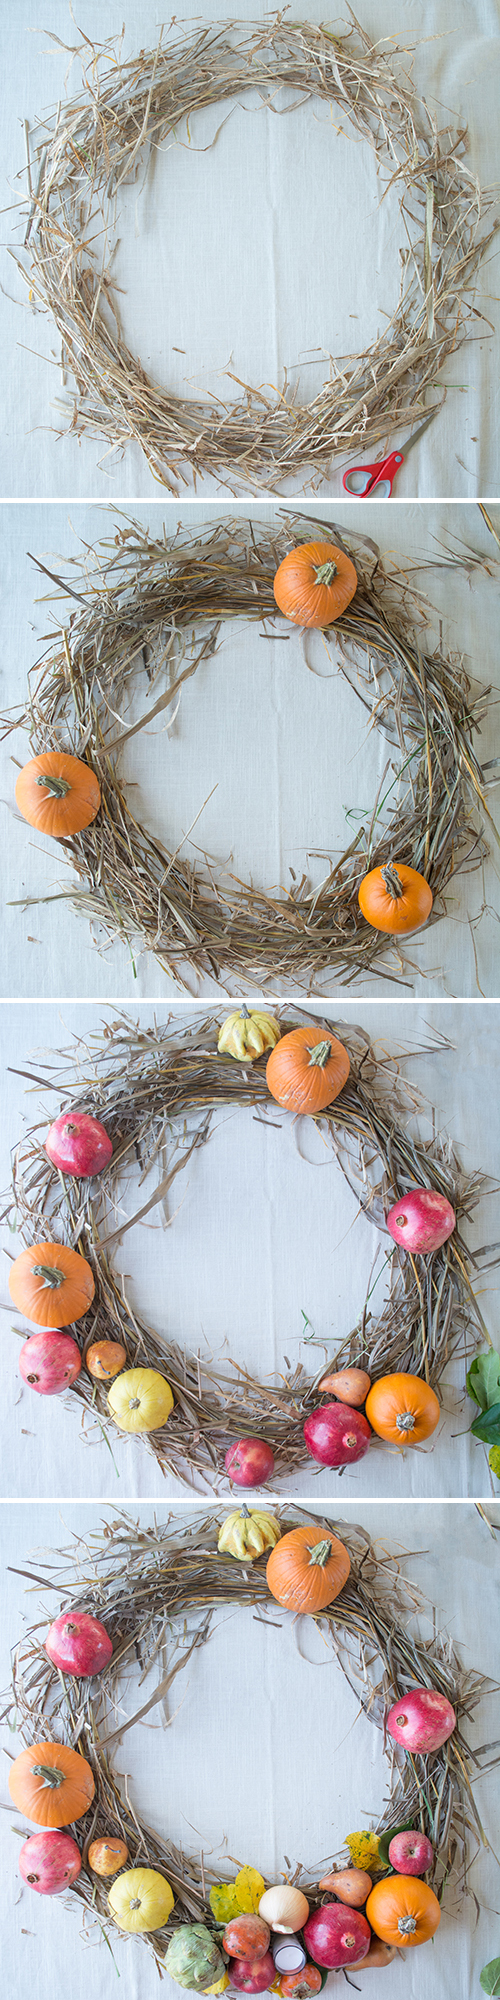 Create a Beautiful Thanksgiving Table Centerpiece | Design Mom